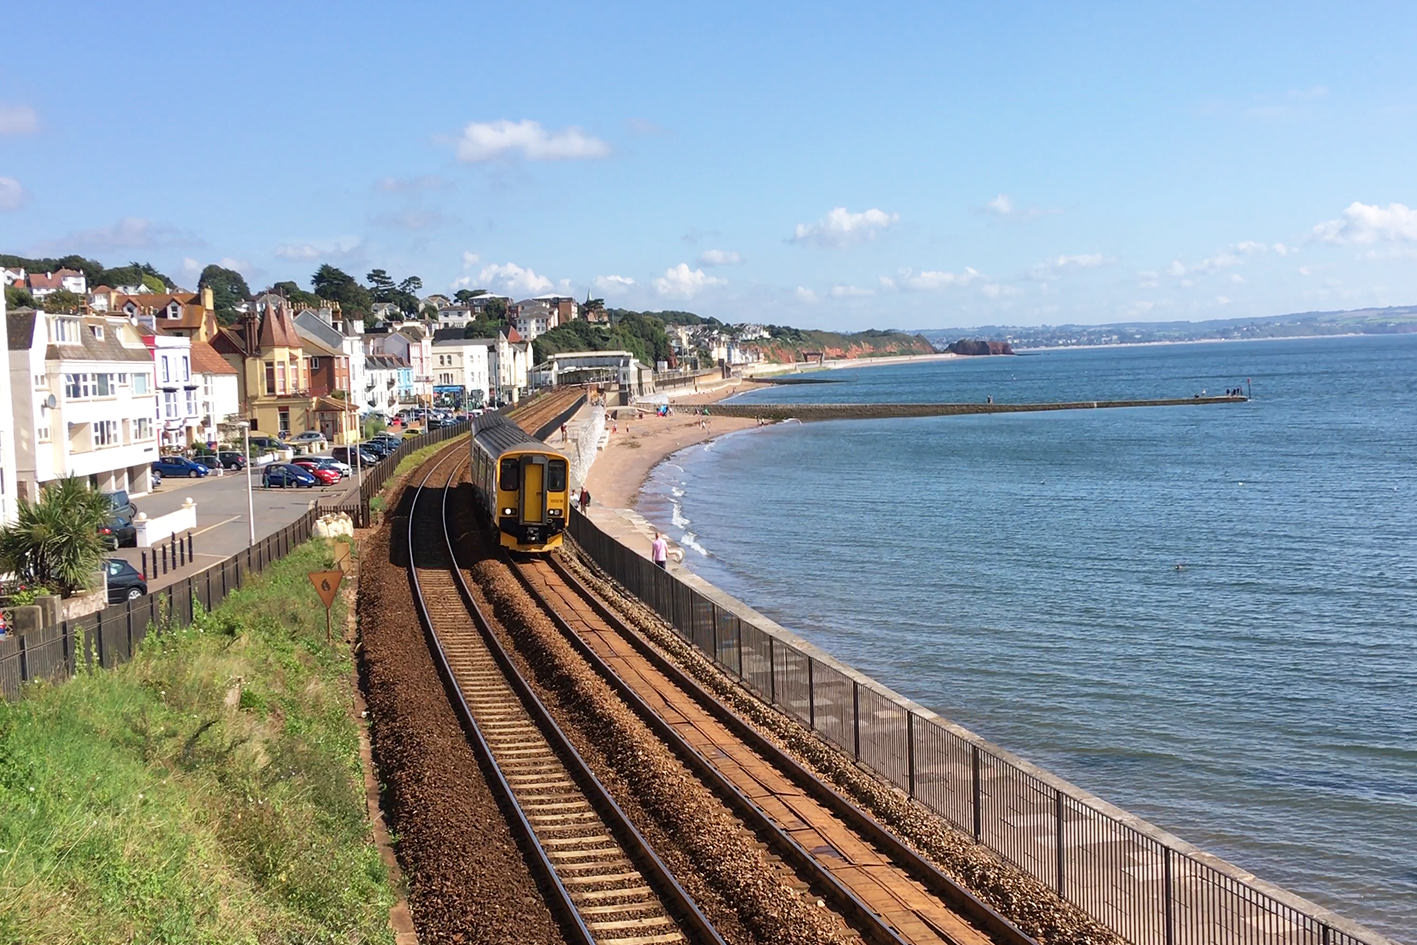 Train departing Dawlish station for Teignmouth with sea to the right